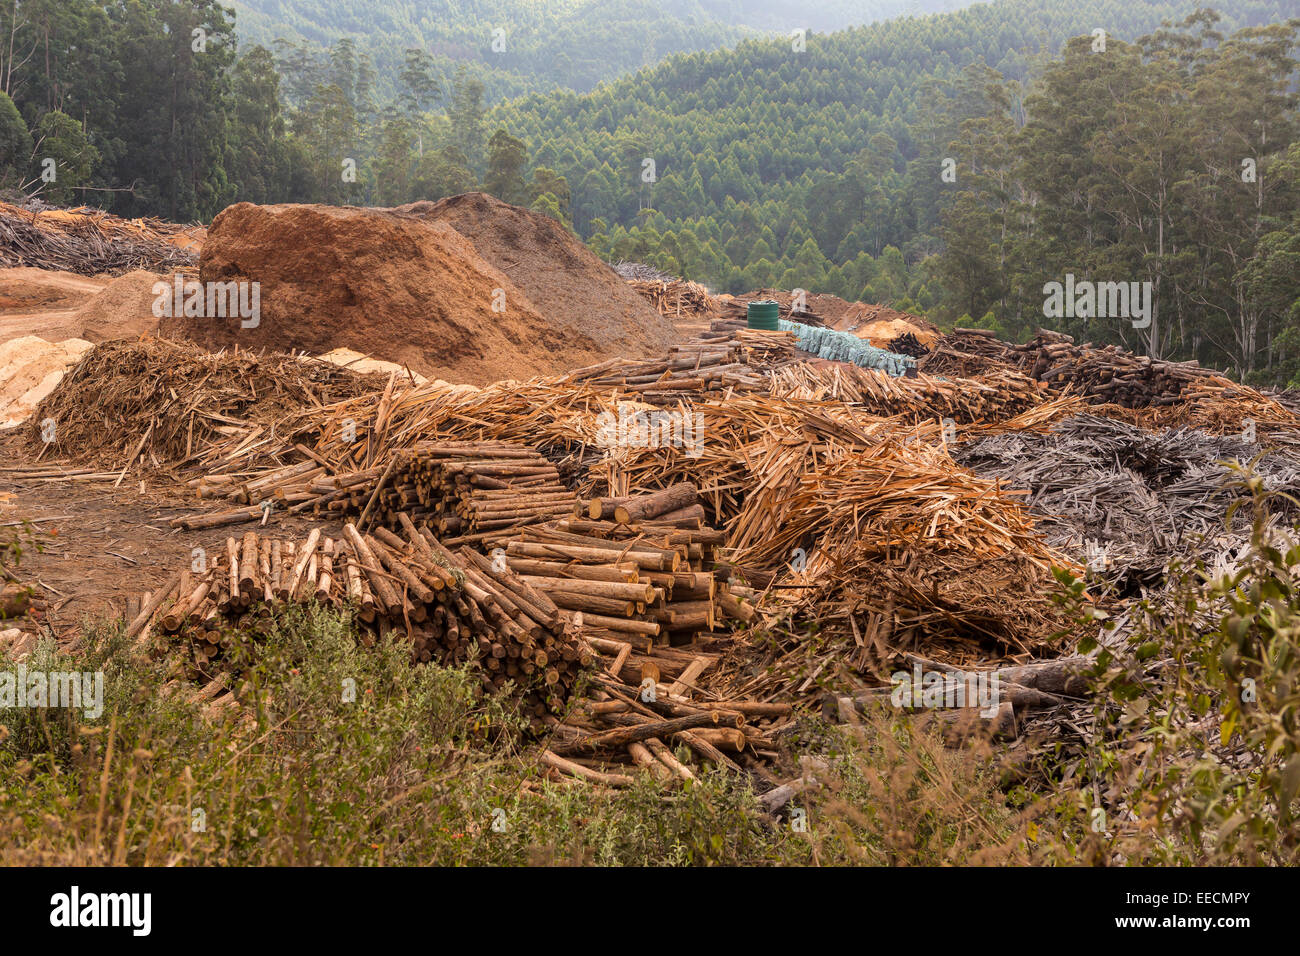 SWAZILAND, AFRICA - Timber industry in Hhohho District. Piles of timber, sawdust and slash near mill. Stock Photo